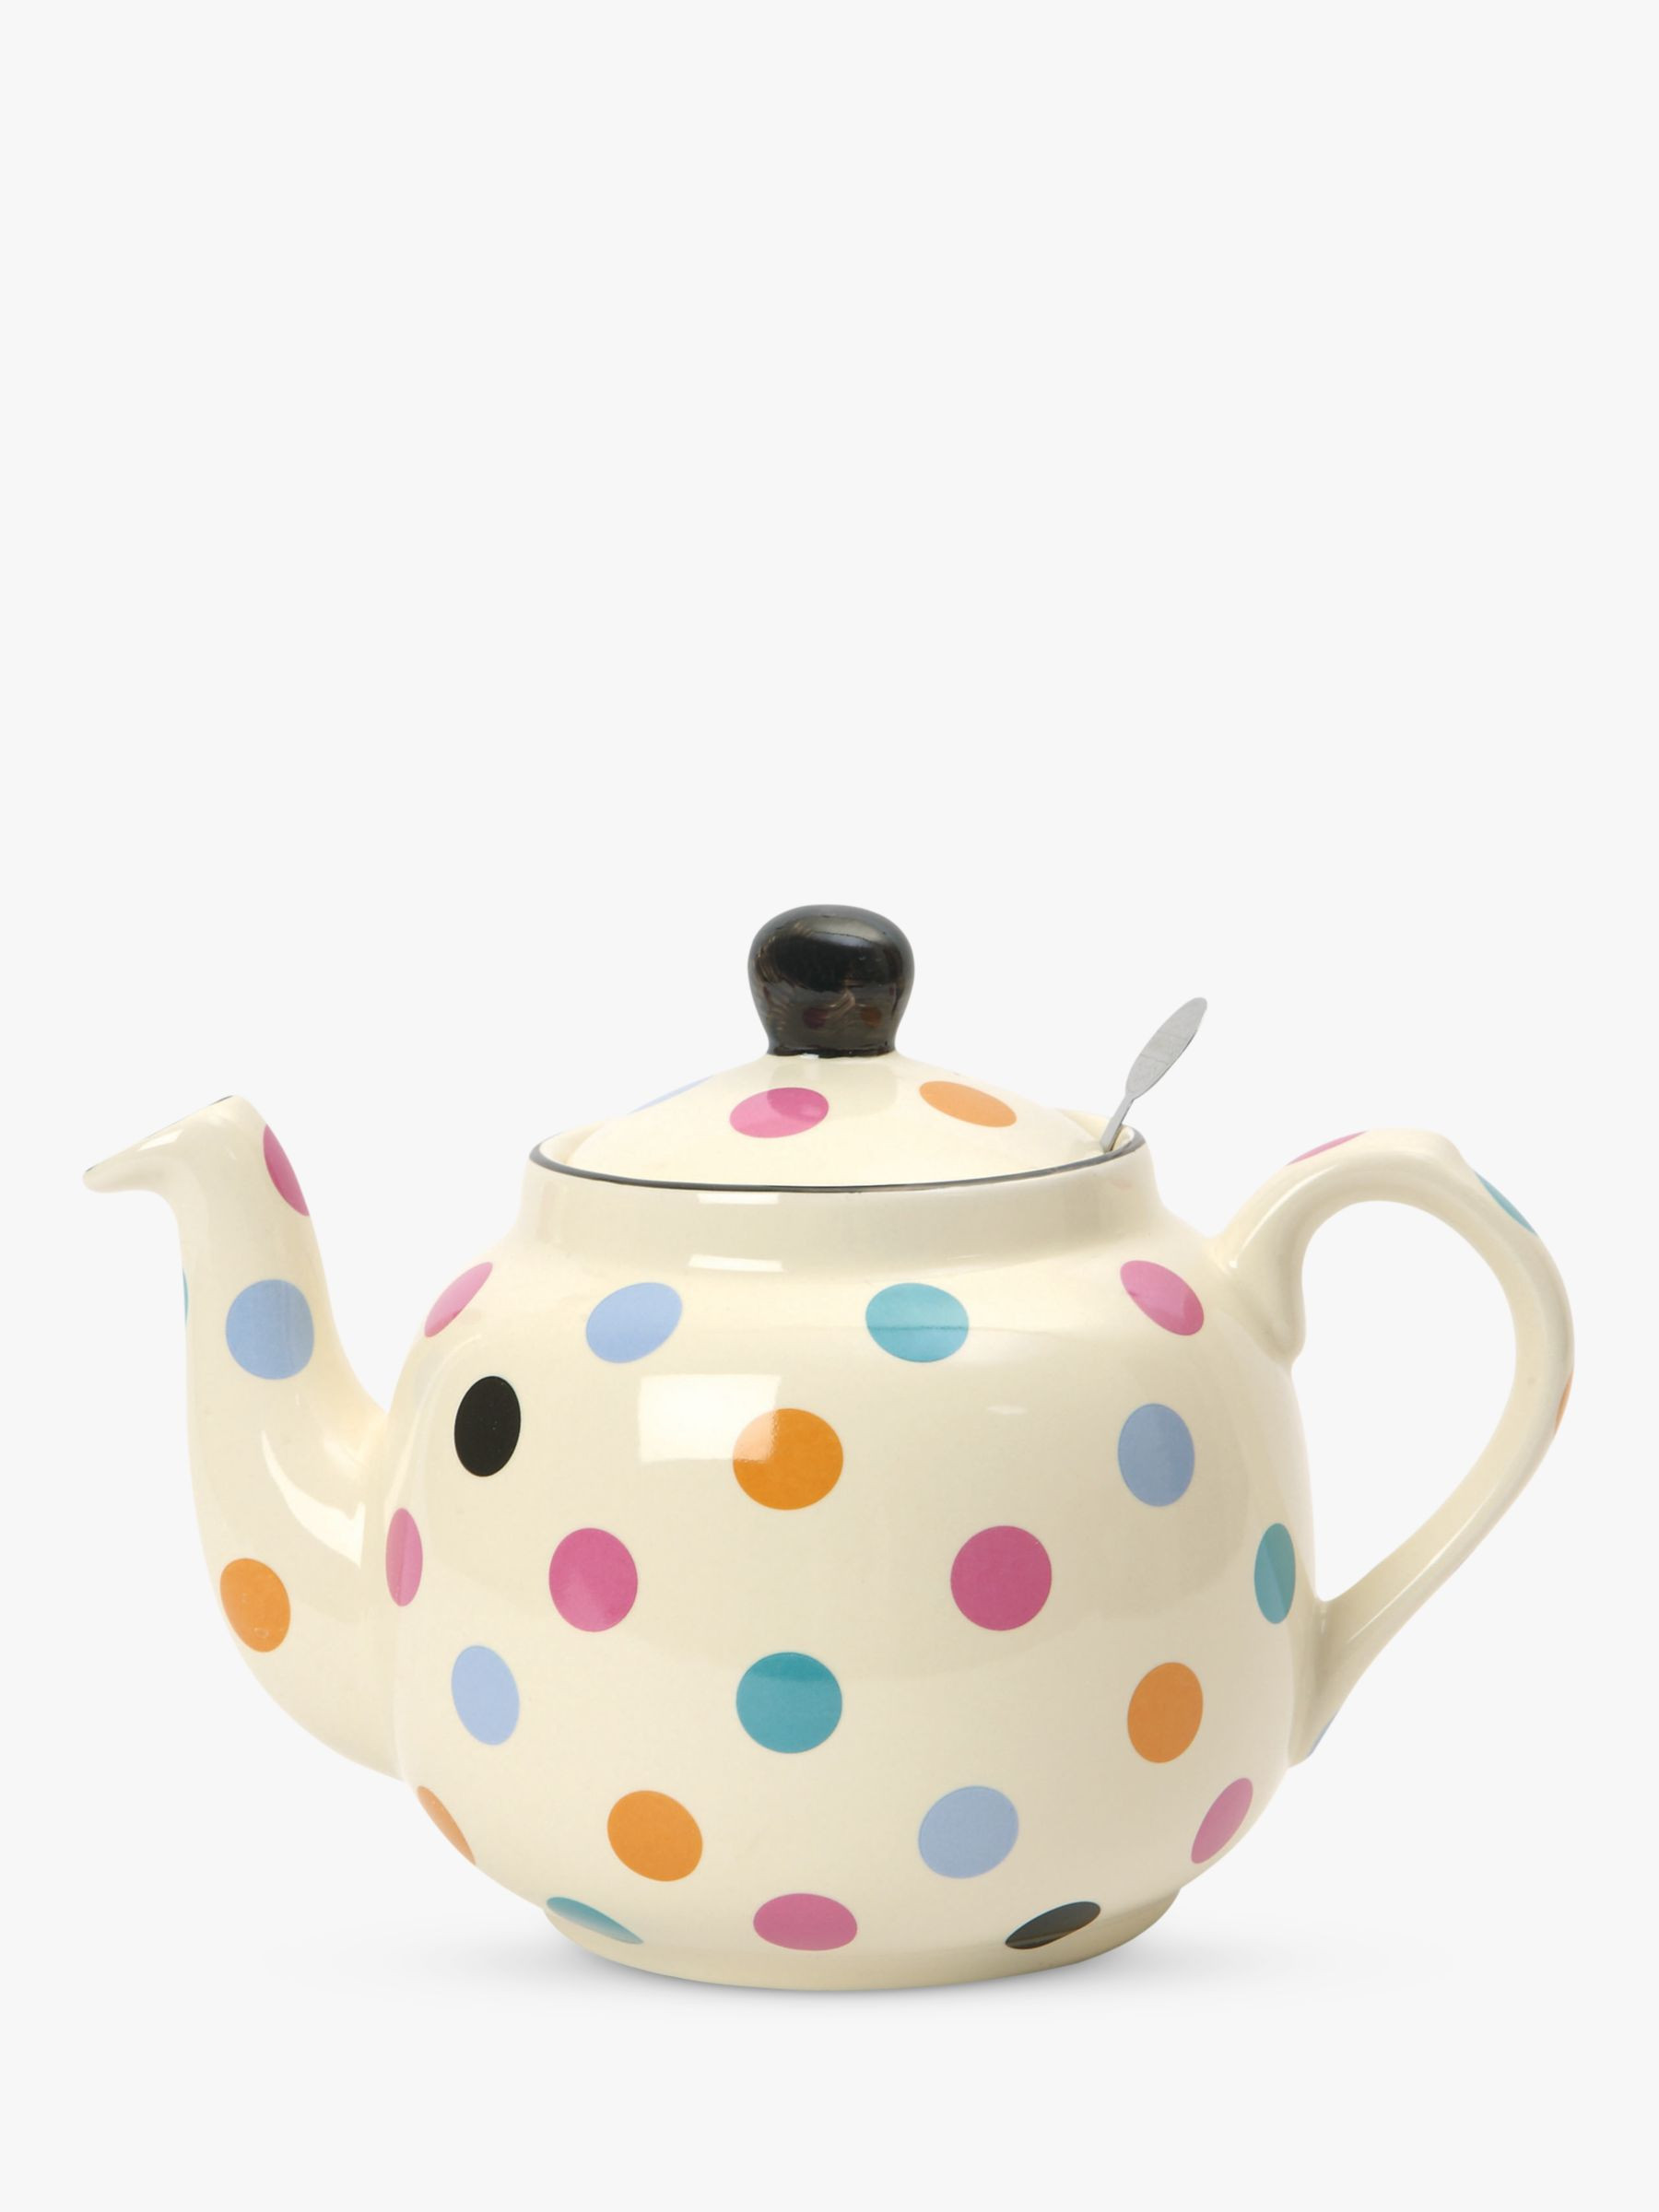 London Pottery London Pottery Spot Teapot with Built-In Ceramic Filter, 2 Cup